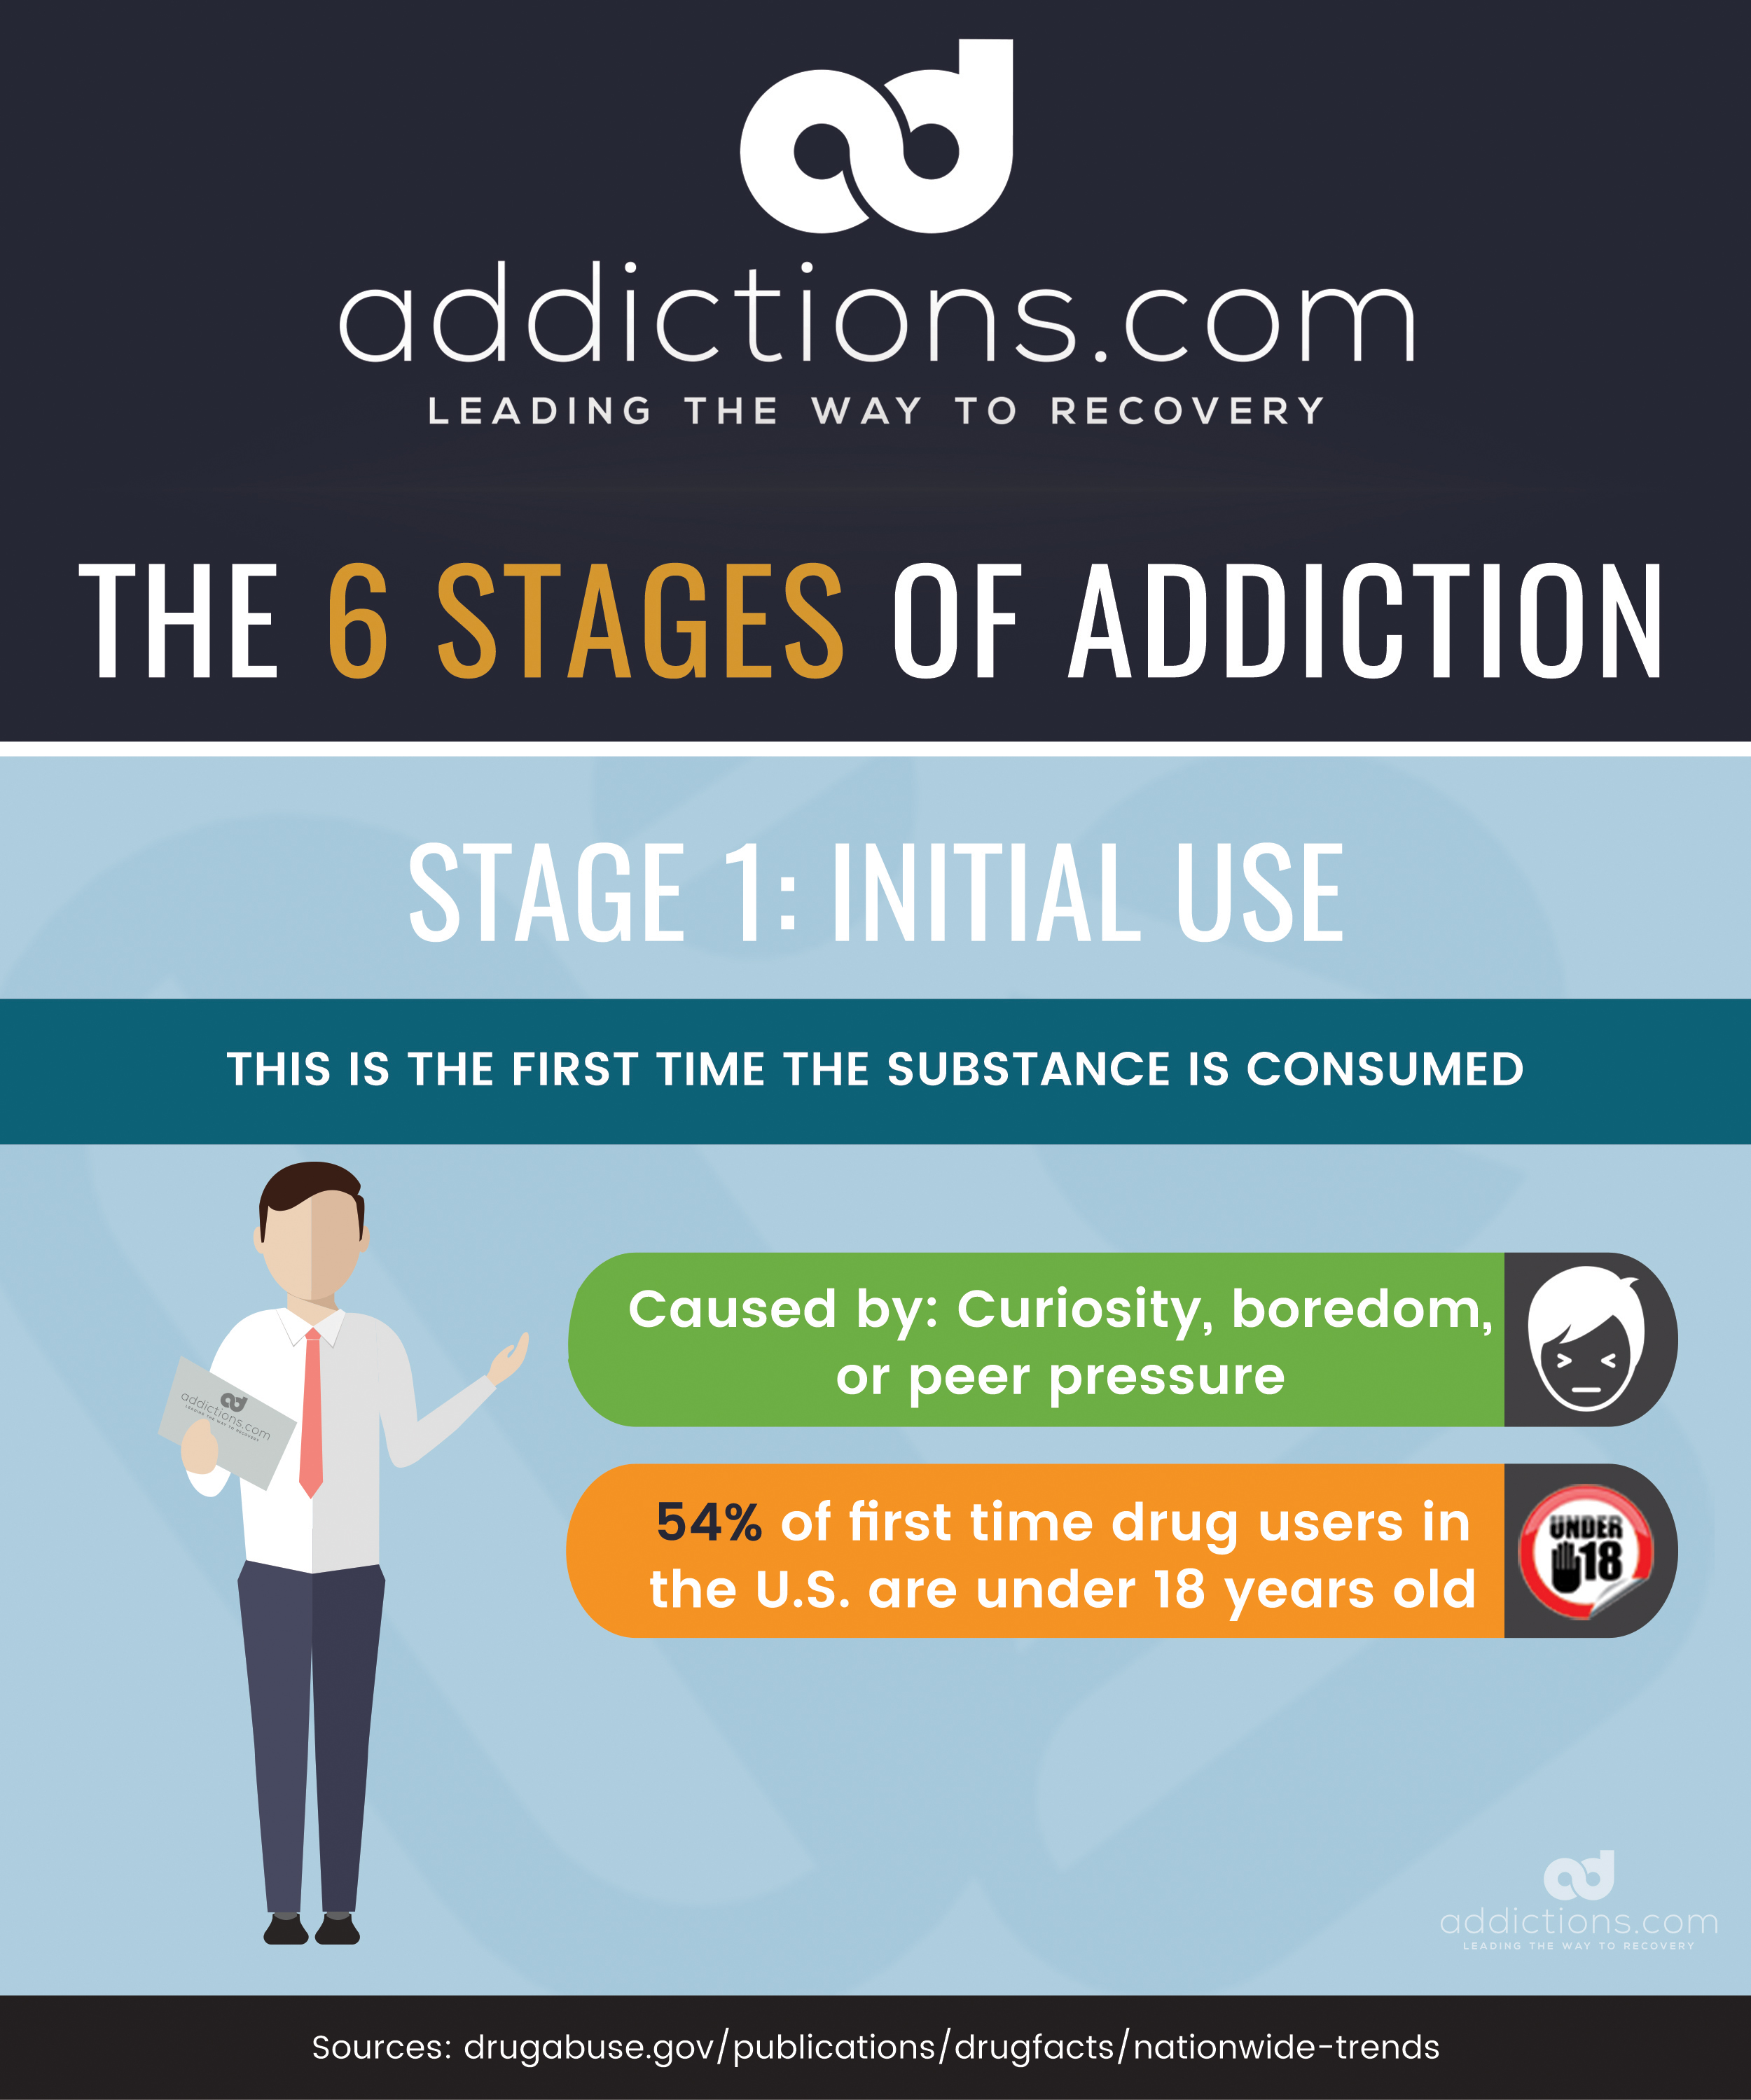 ther importance and dangers of the use of drugs What are the dangers of drug addiction drug addiction can pose different dangers in different settings—all of which can affect more people than just the user physical dangers to the user include: • developing a tolerance to the drug • developing psychological and physical dependence • withdrawal symptoms when trying to cut back or quit.